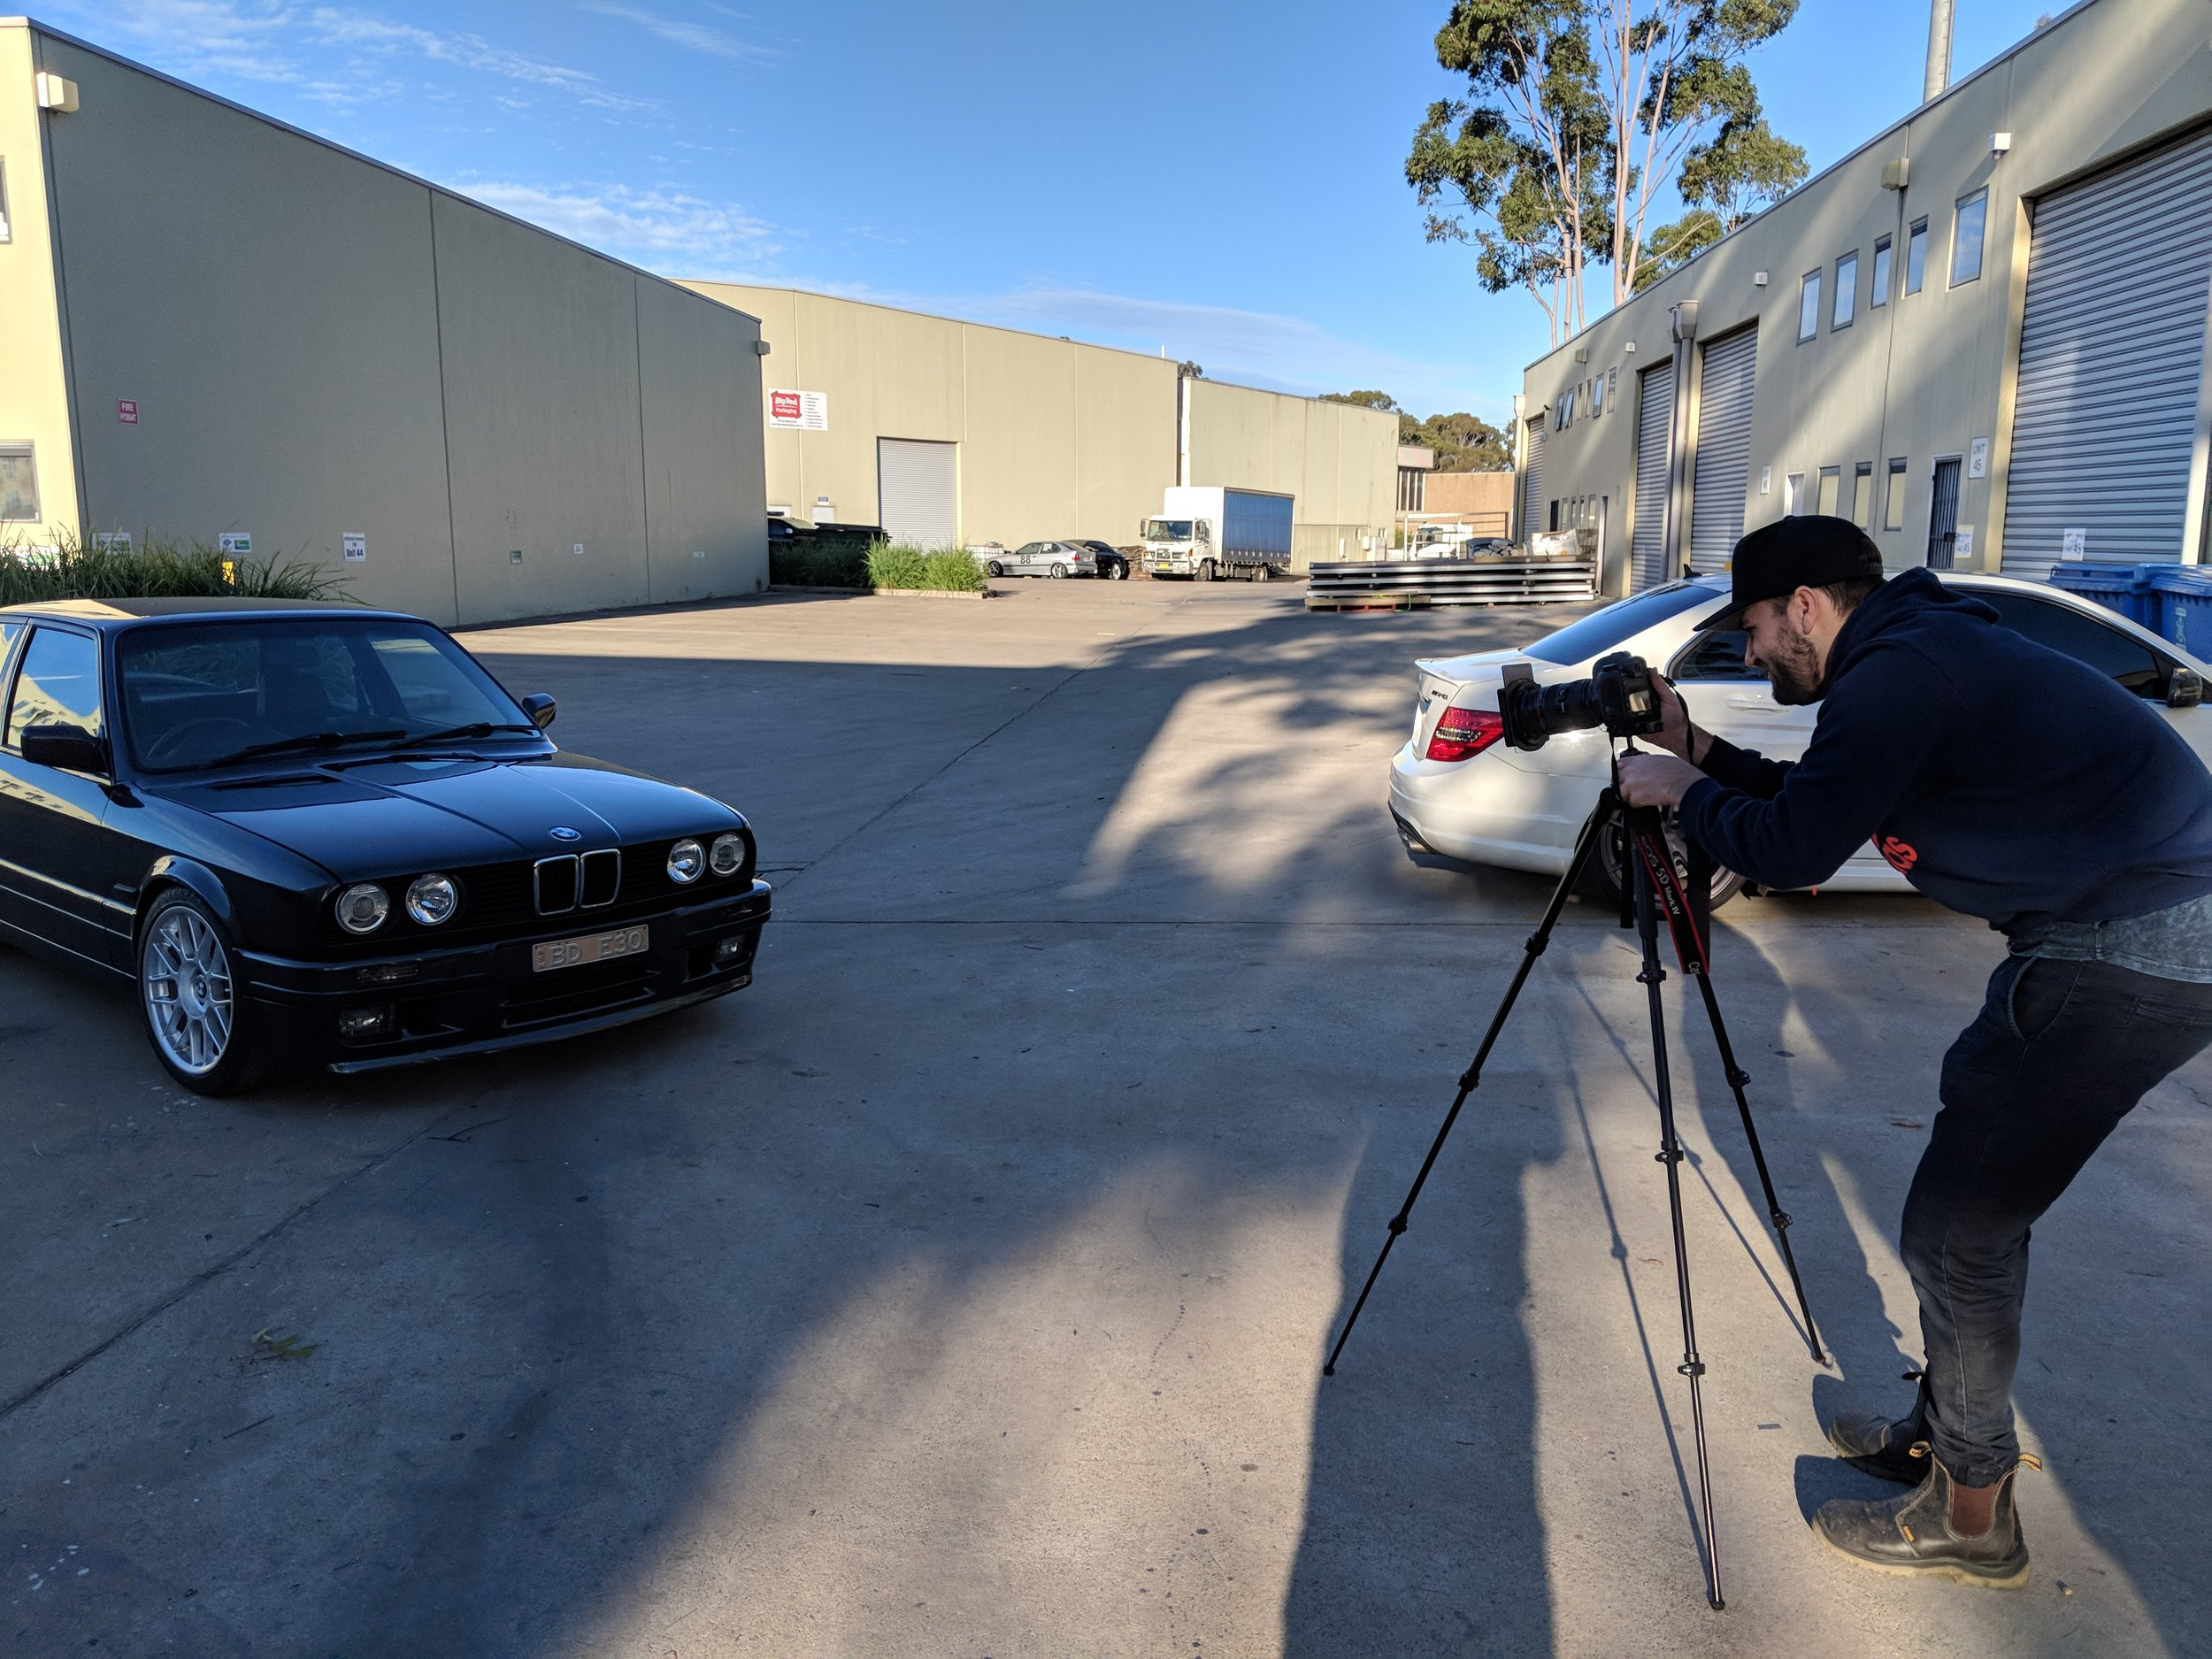 Professional photographer and auto enthusiast Michael (Instagram @afterdaark) was all too happy when asked to do a photo shoot for this immaculate E30.